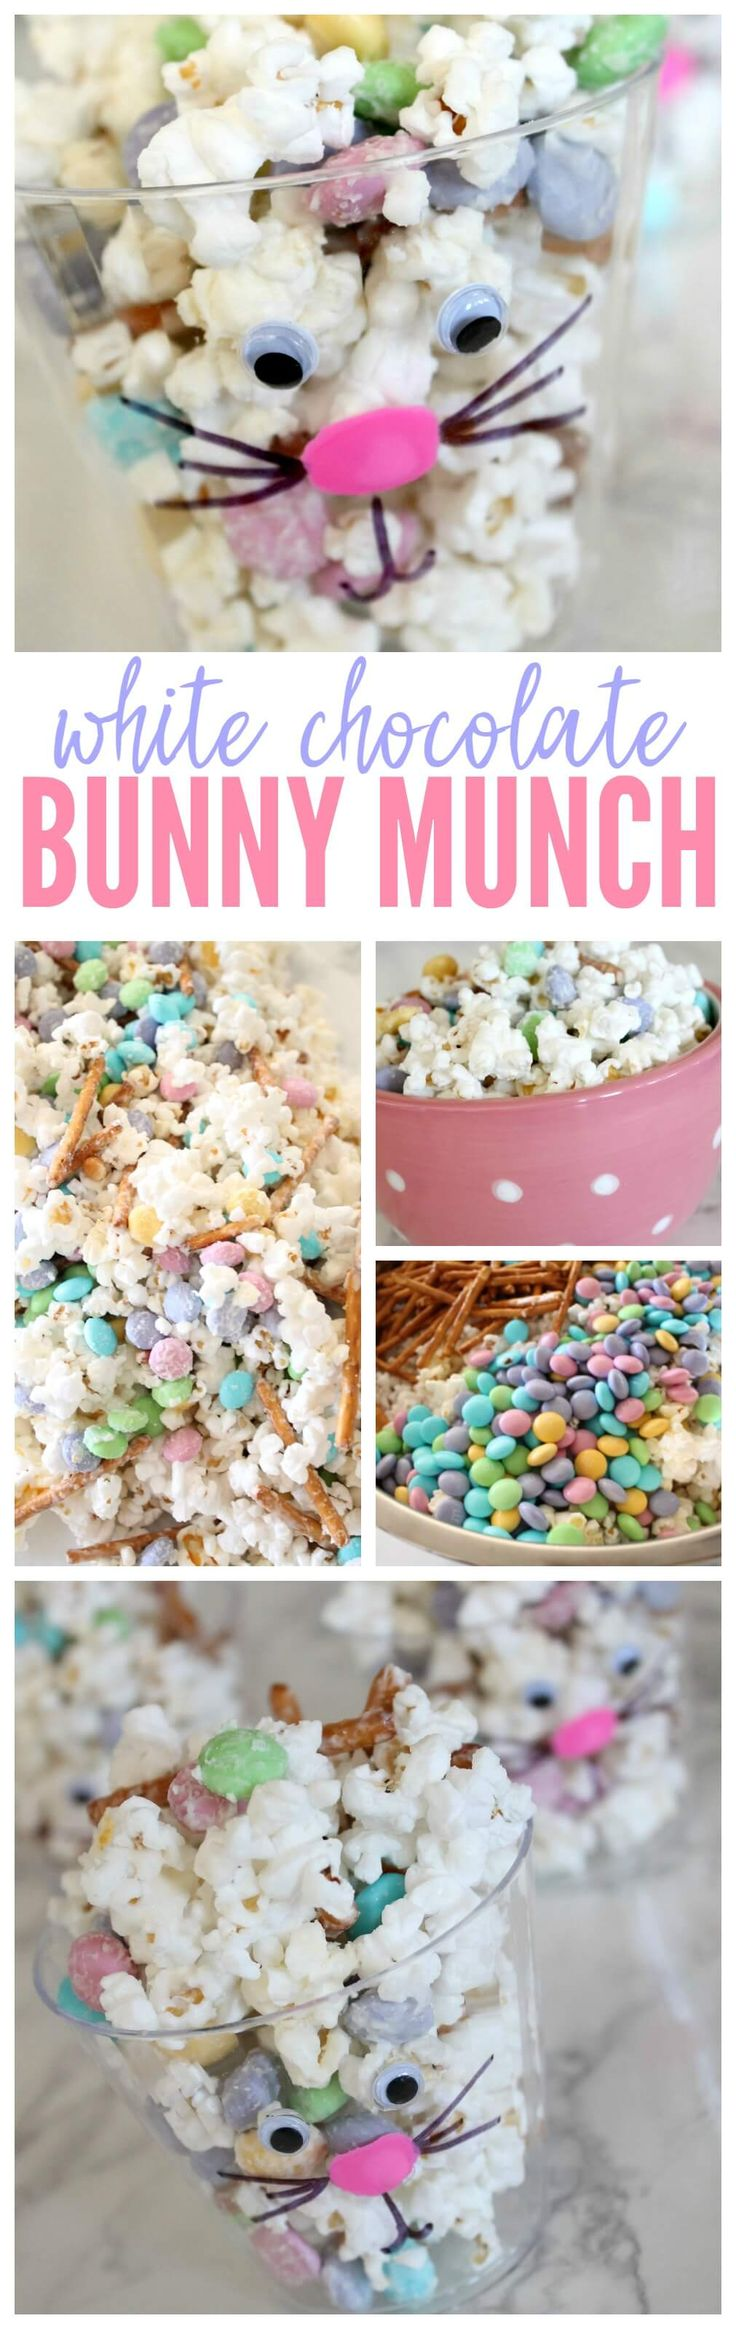 YUM! I love this great recipe for this super yummy White Chocolate Bunny Munch! This is the perfect snack for Easter for the kids and adults in your whole family, so be sure to give it a try this year!